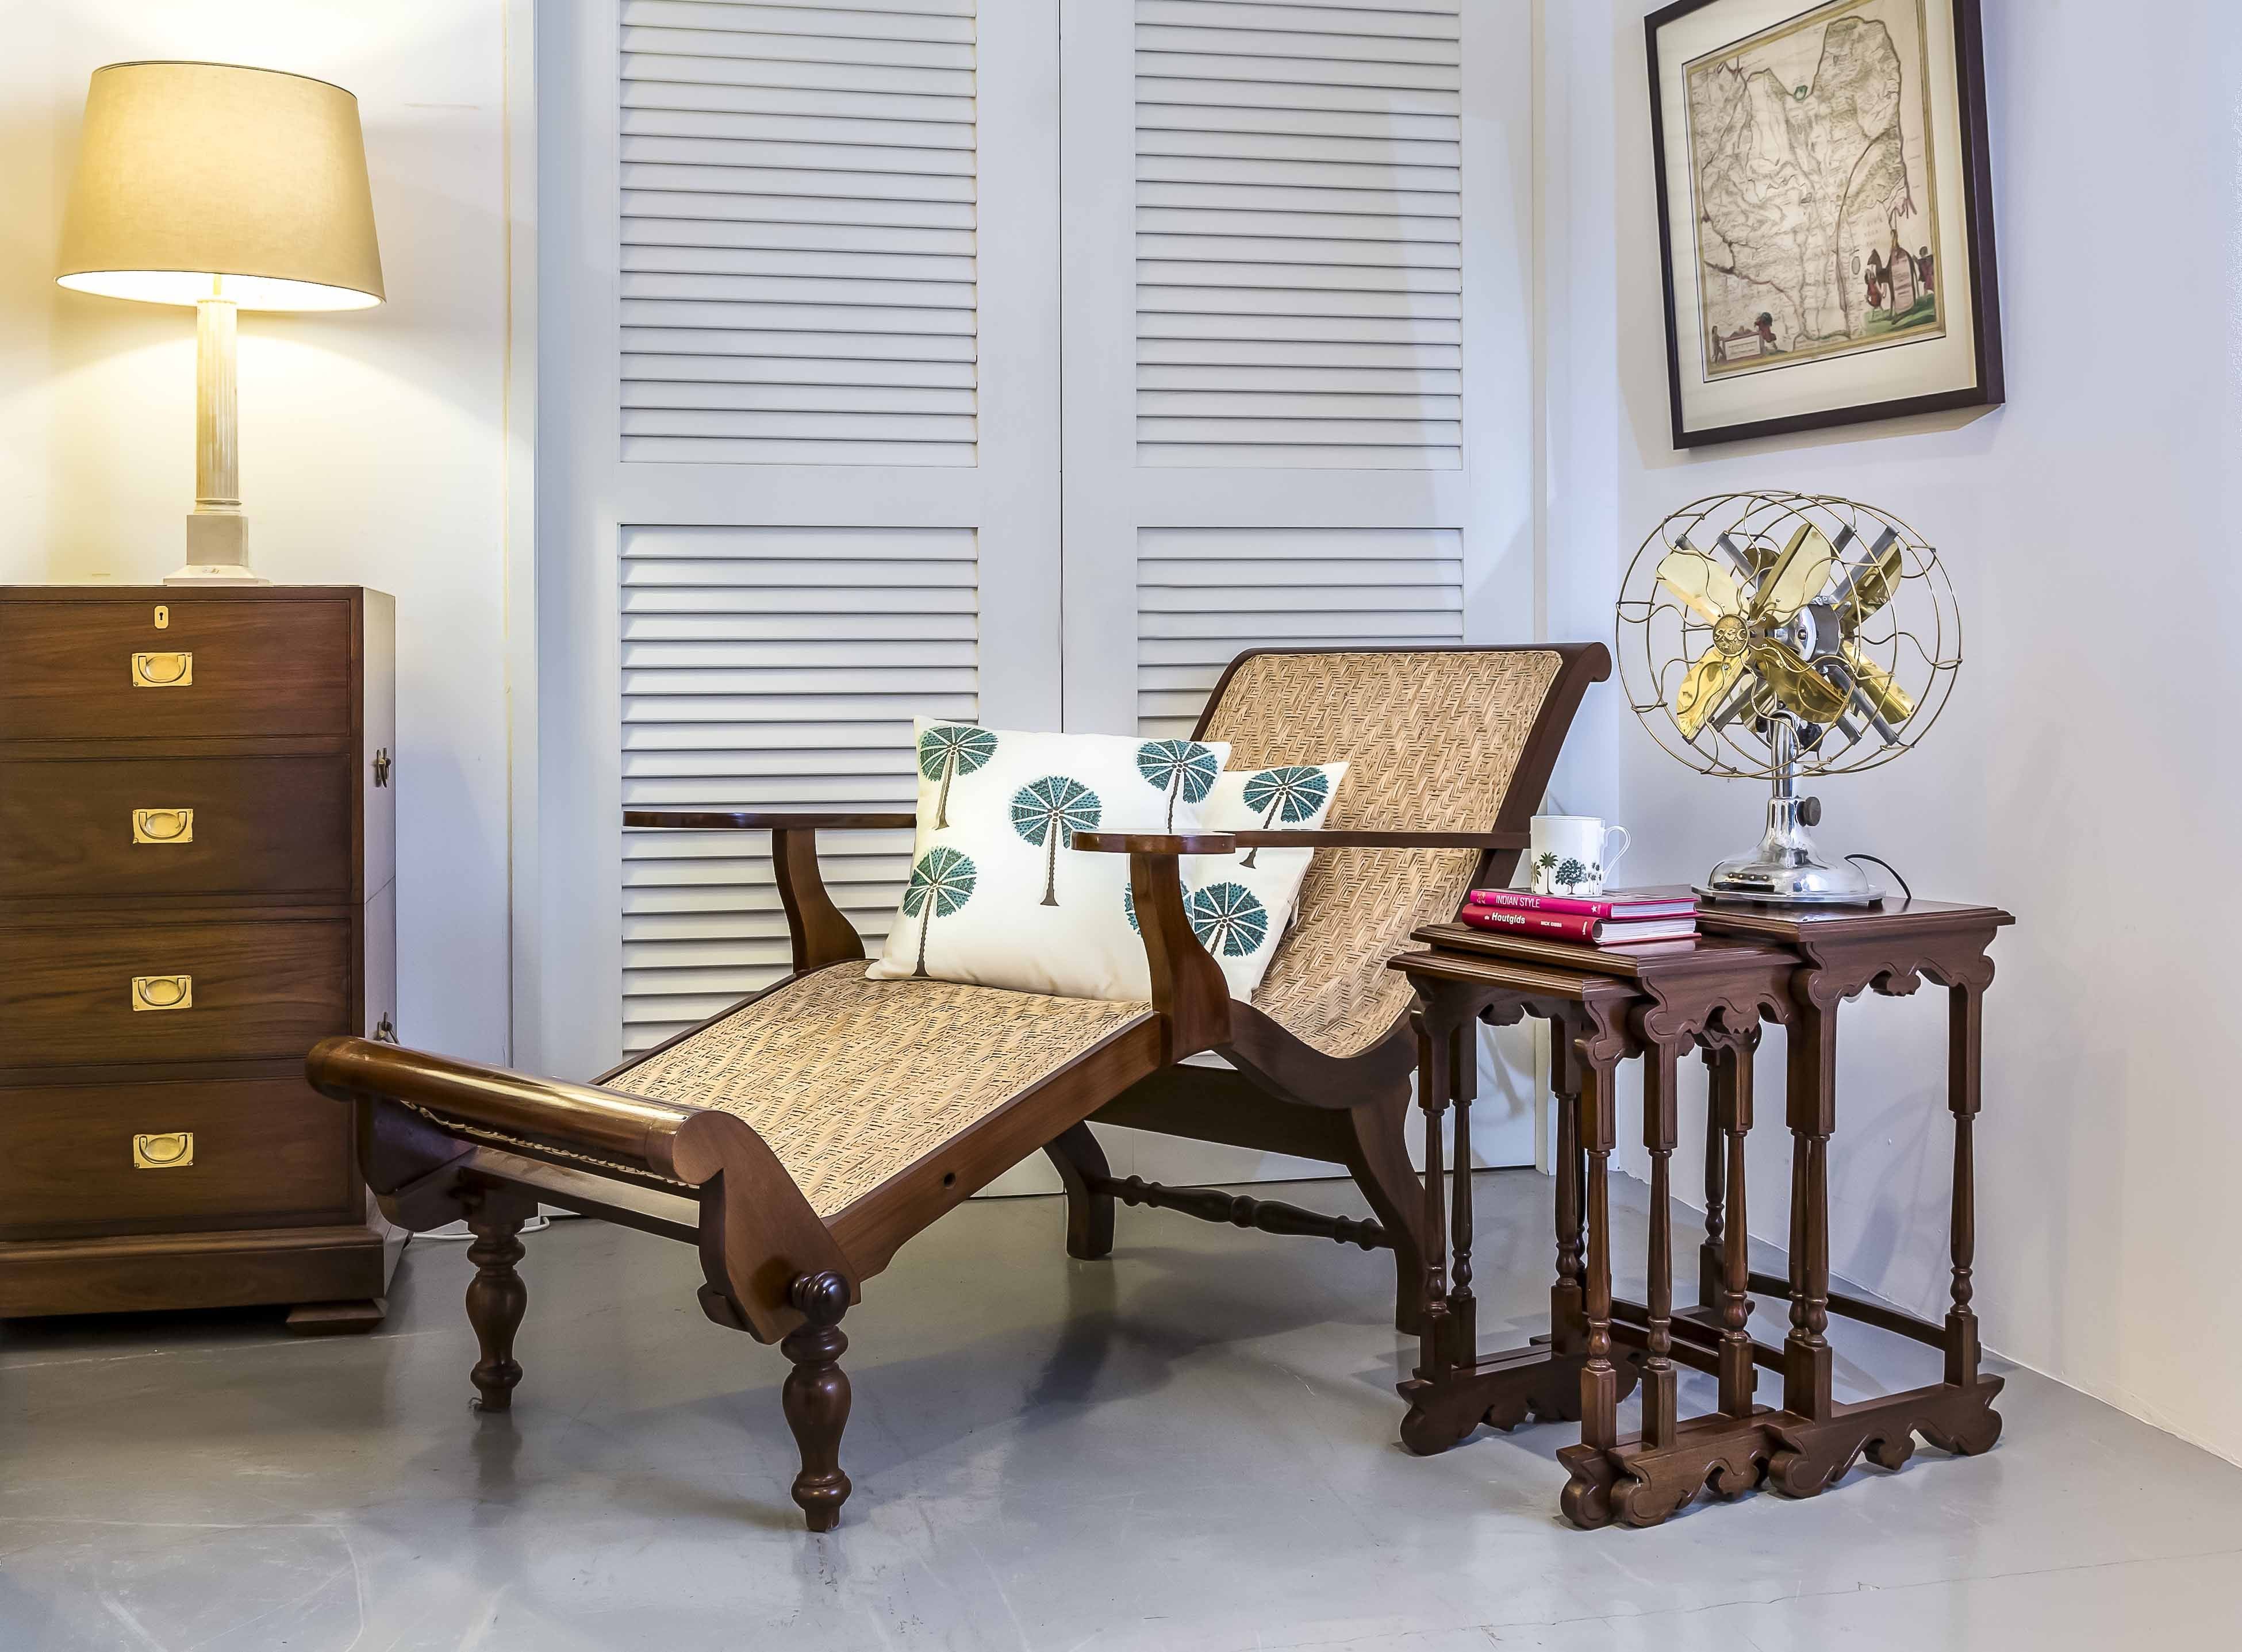 British Colonial Teakwood Easy Chair And Nest Of Tables